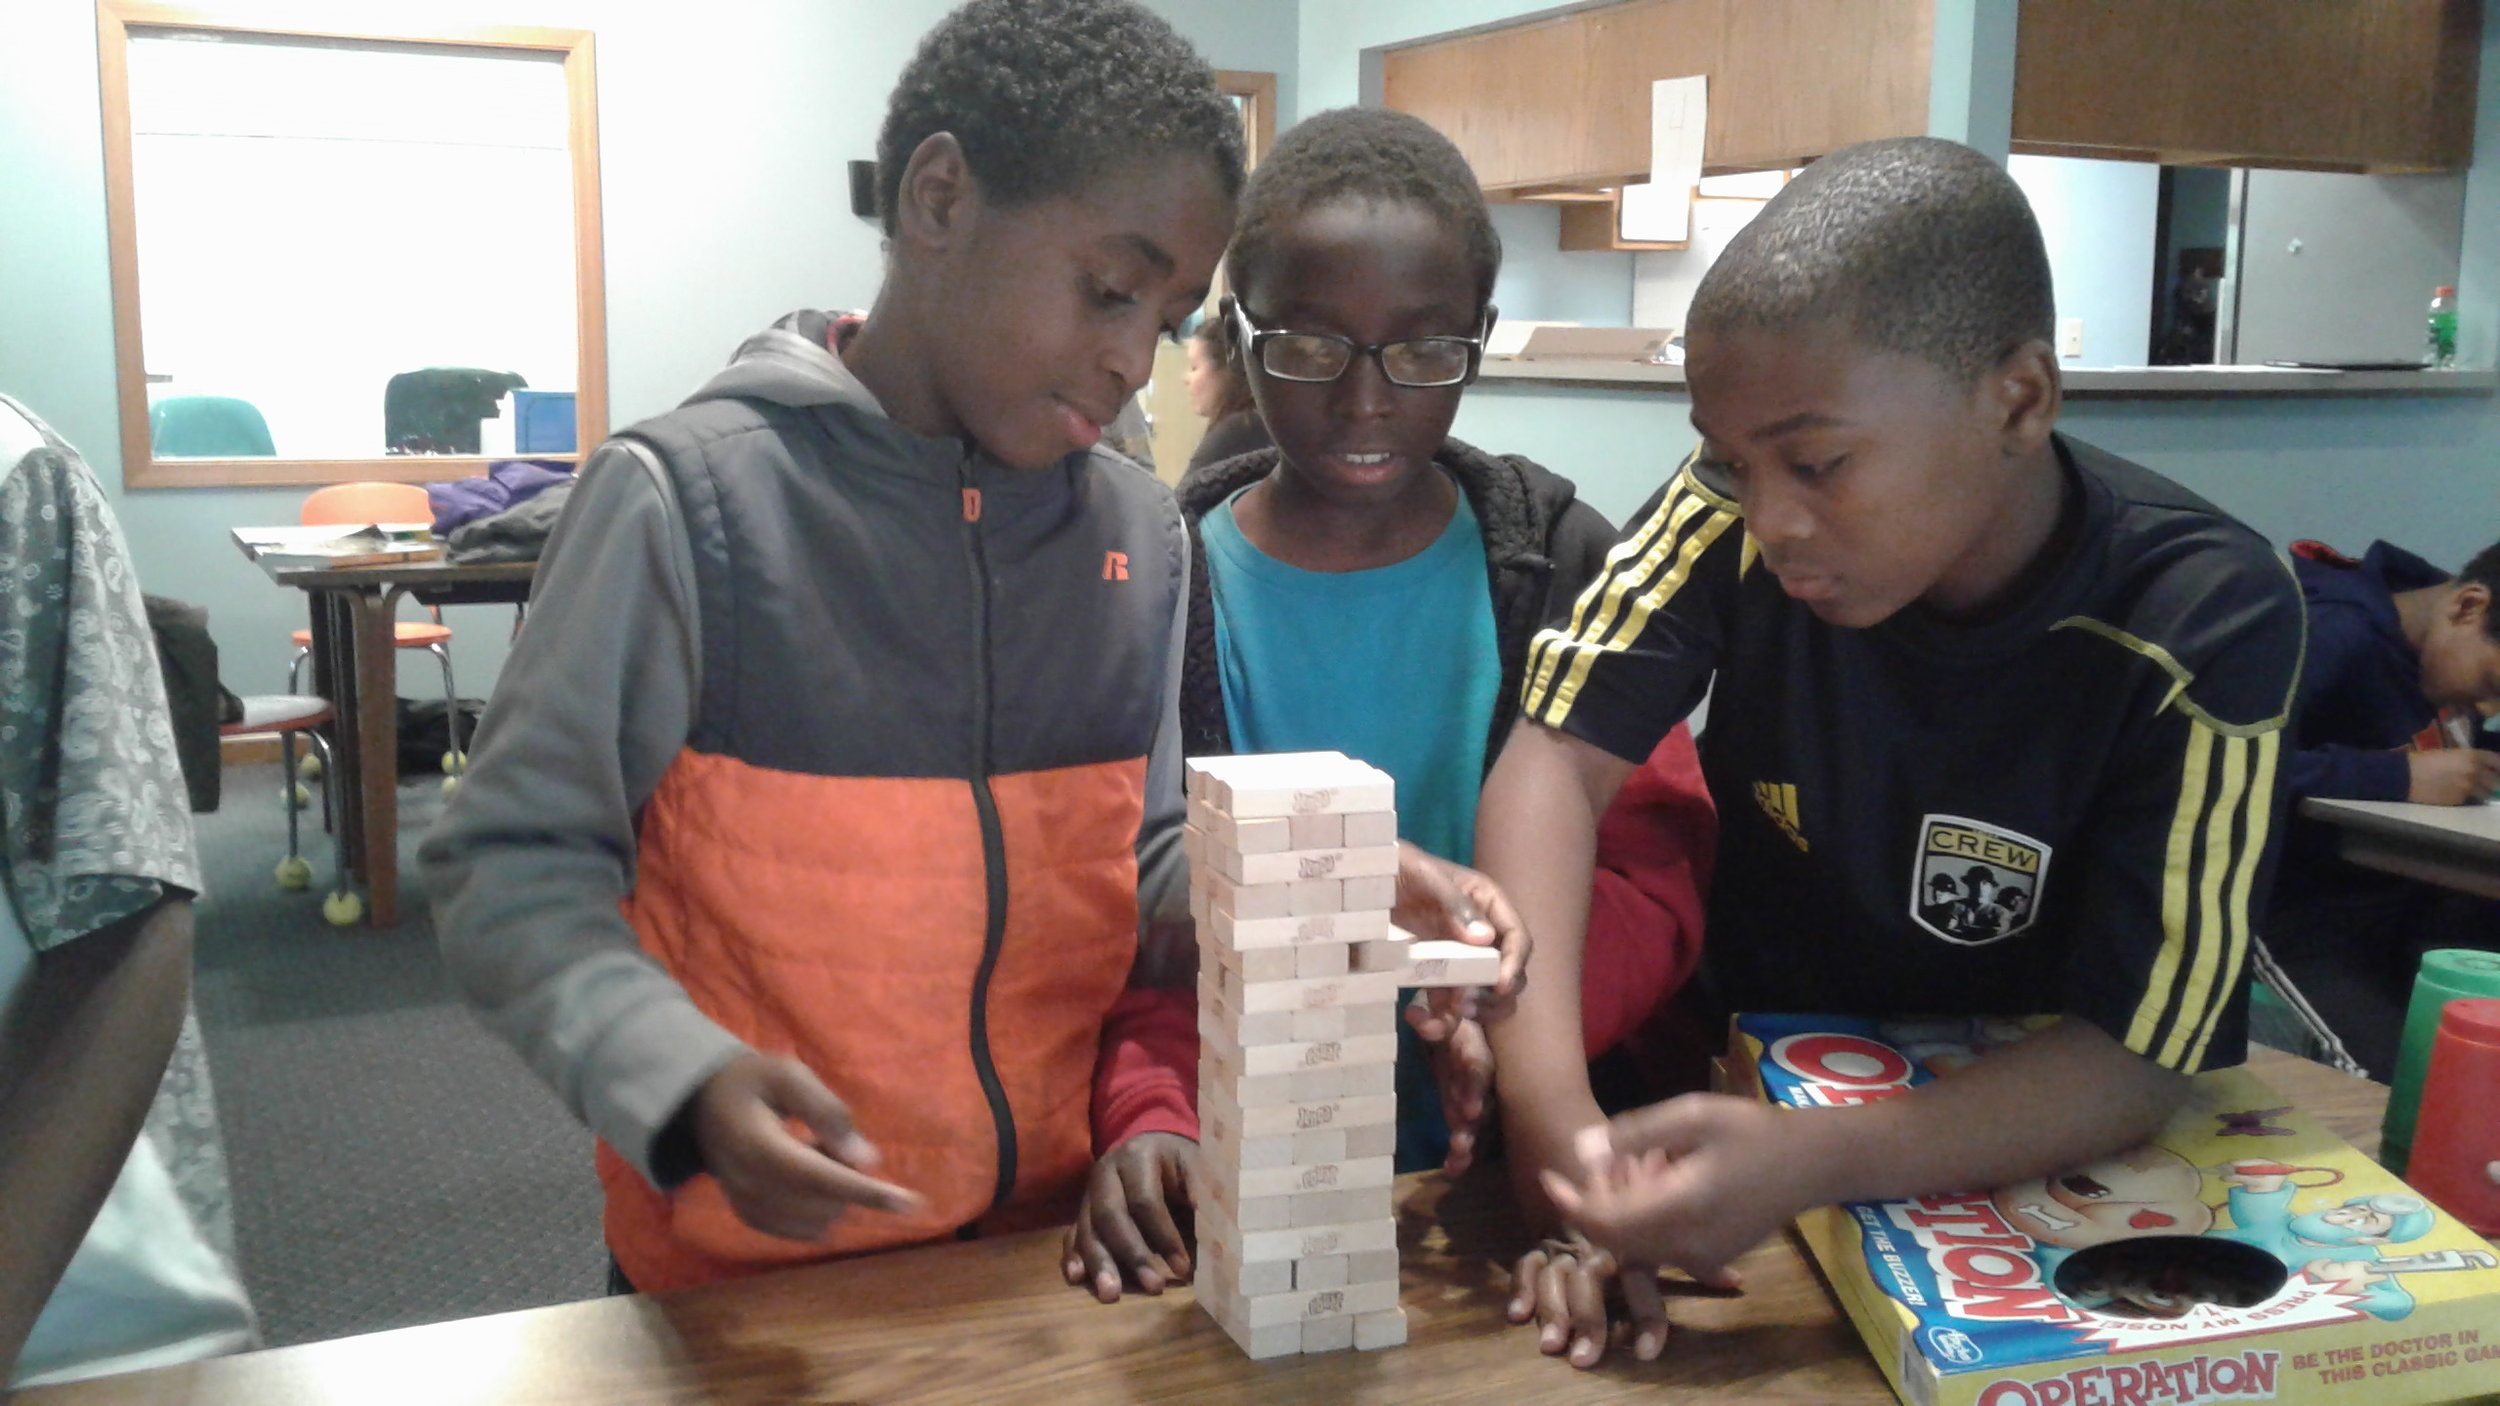 Emerald Glen children mix in games with learning after school.